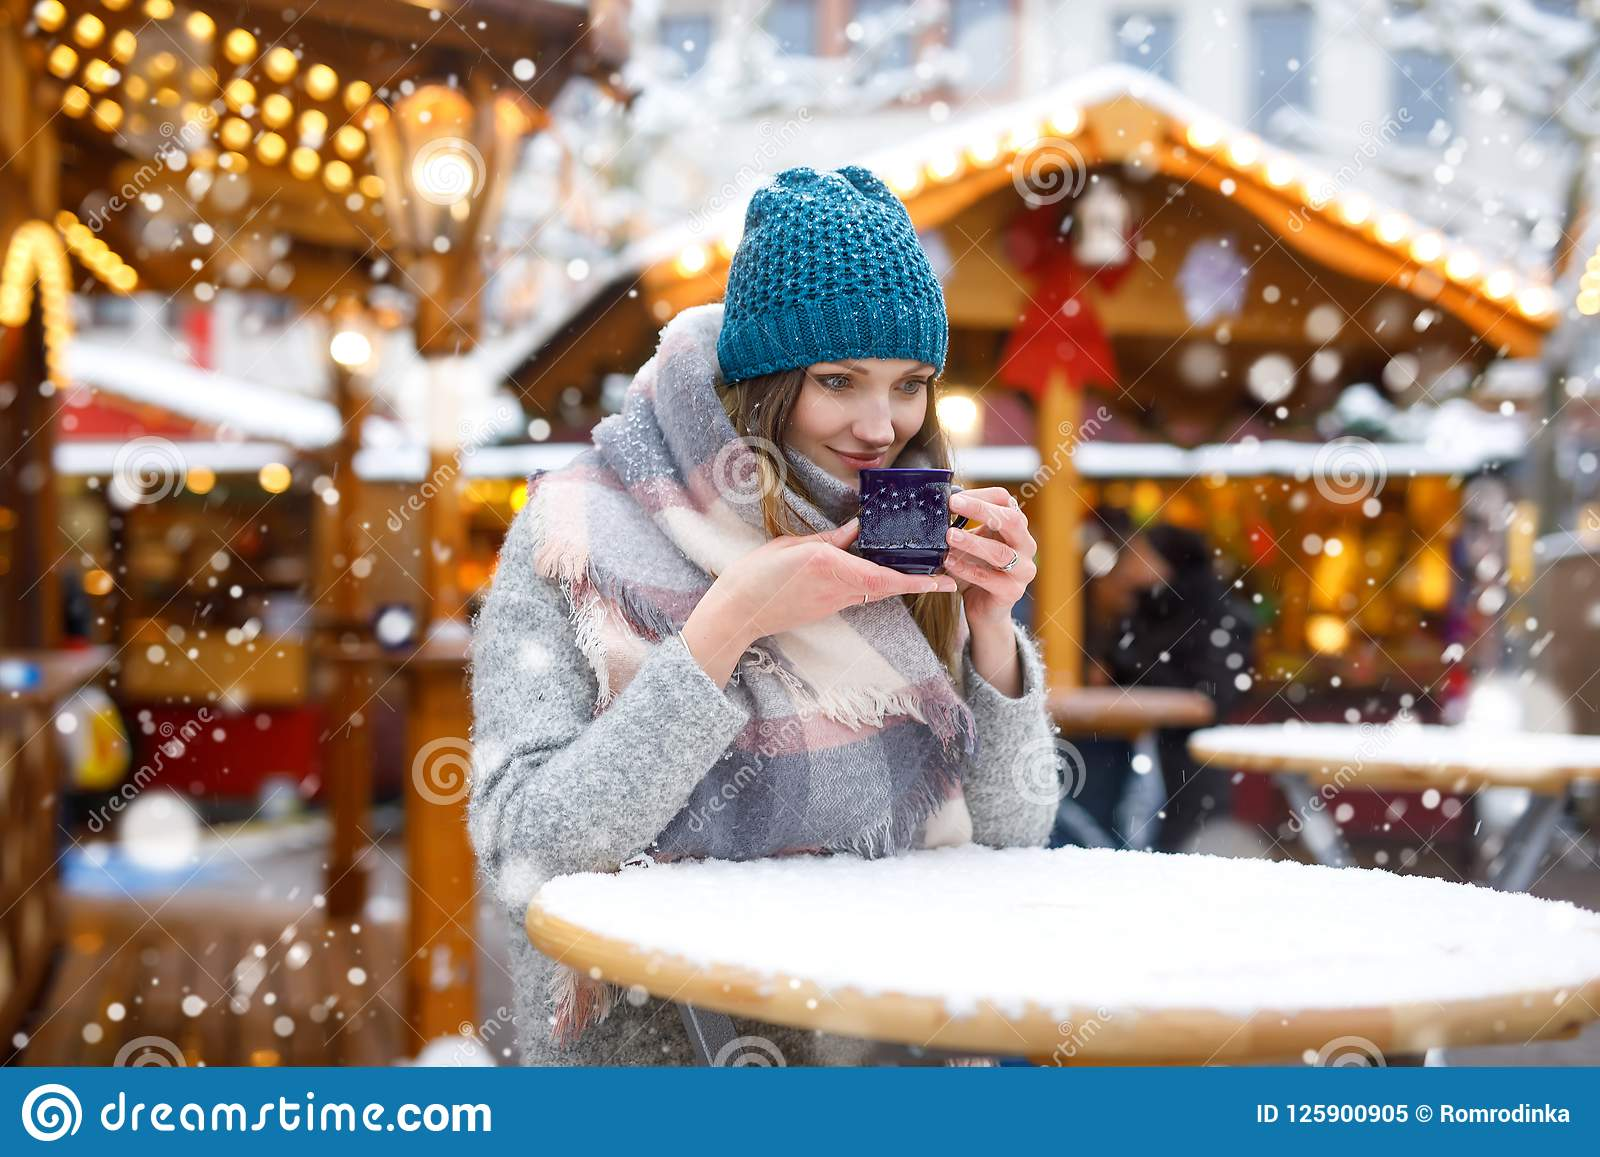 Beautiful young woman drinking hot punch, mulled wine on German Christmas market. Happy girl in winter clothes with